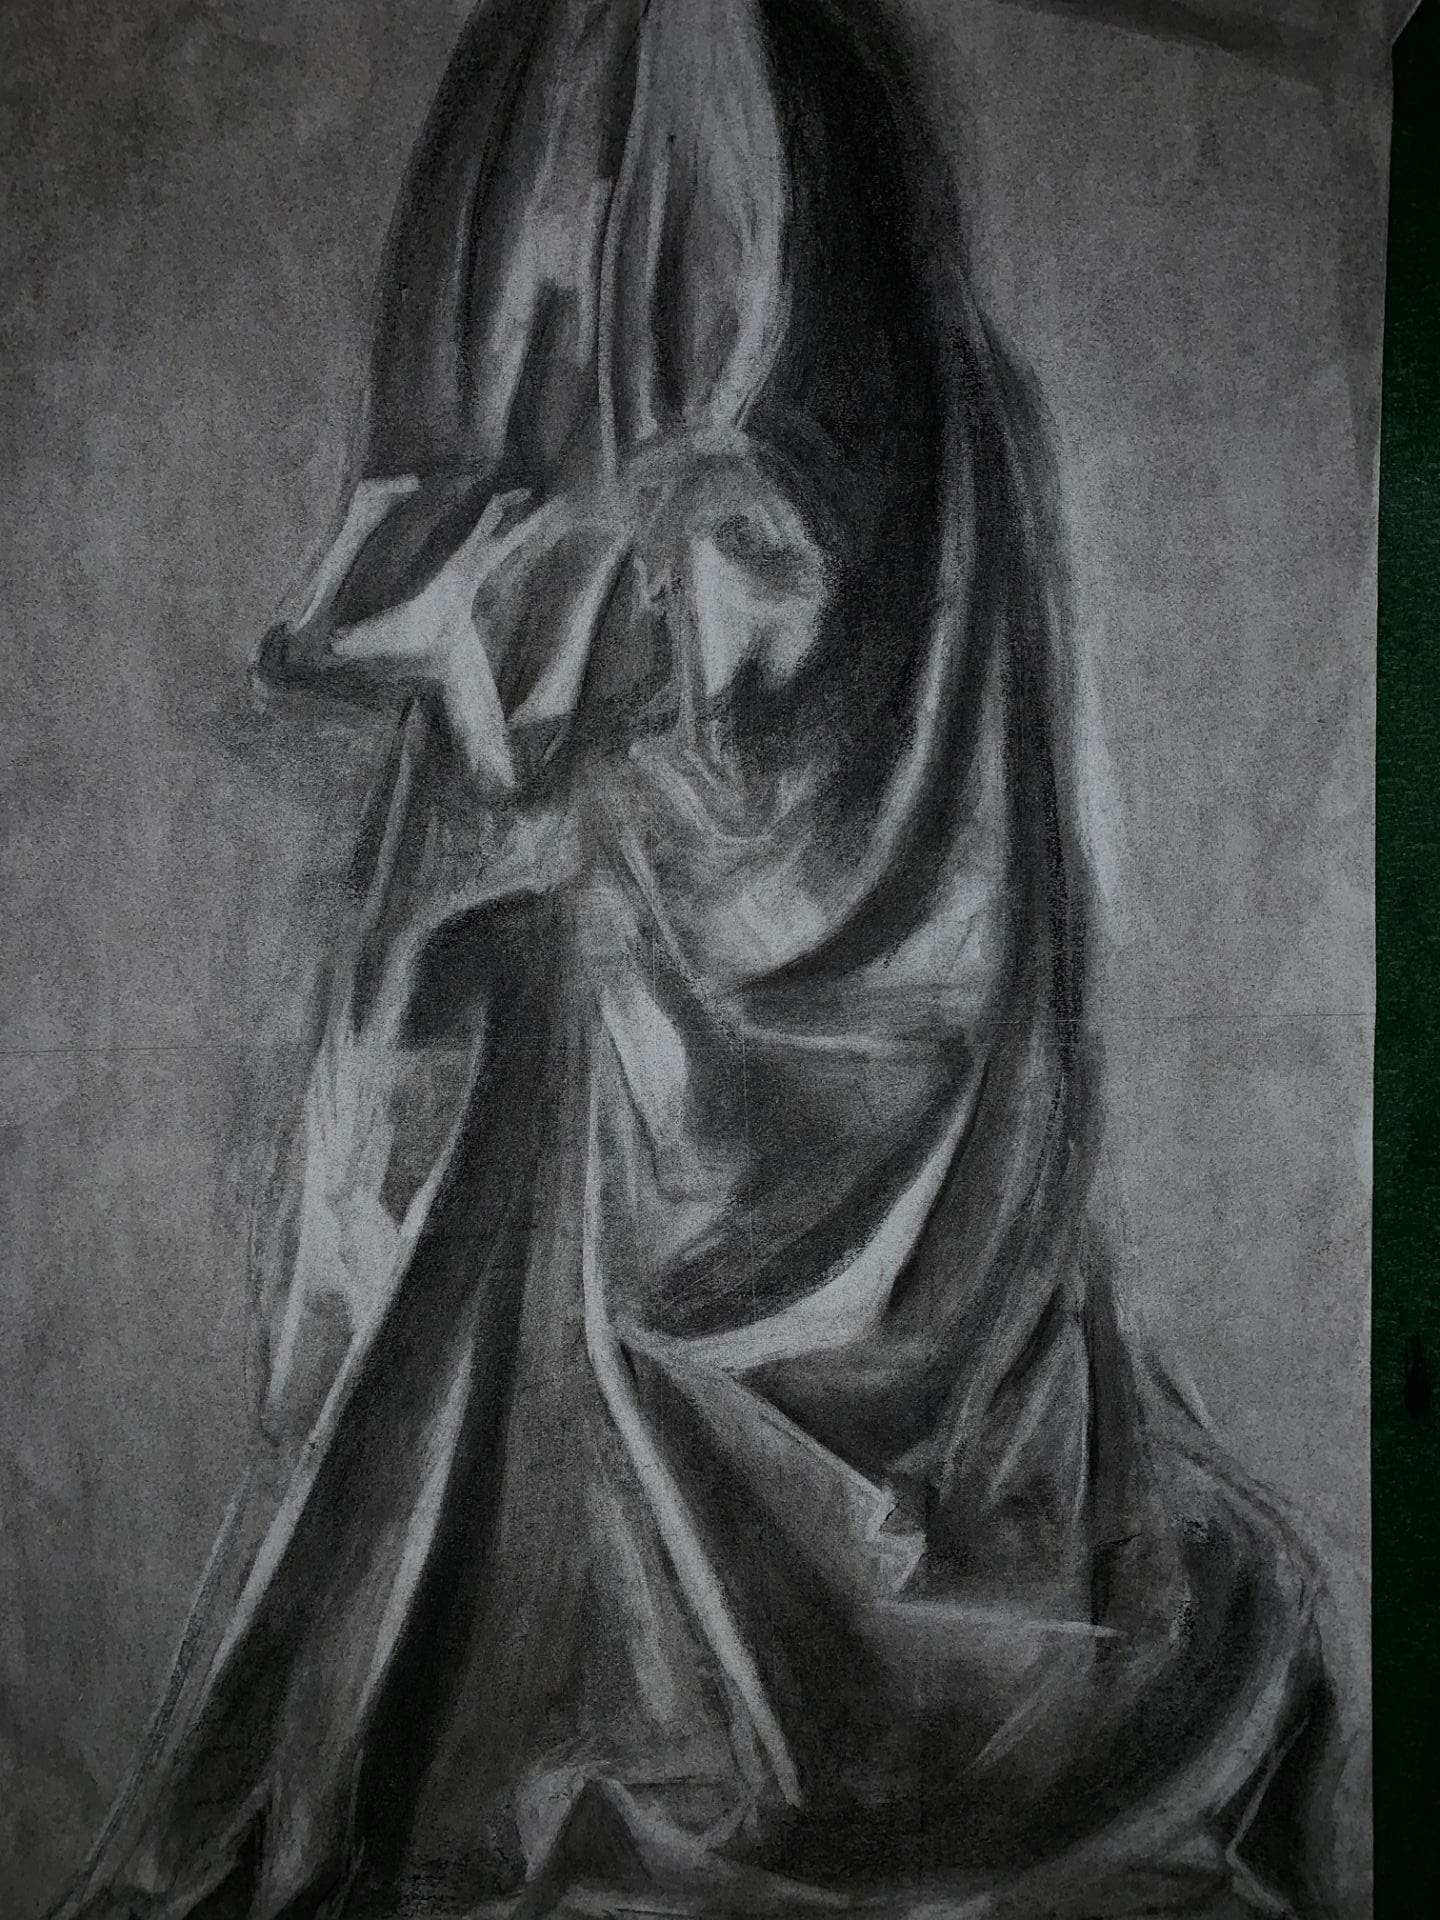 Davinci drawing